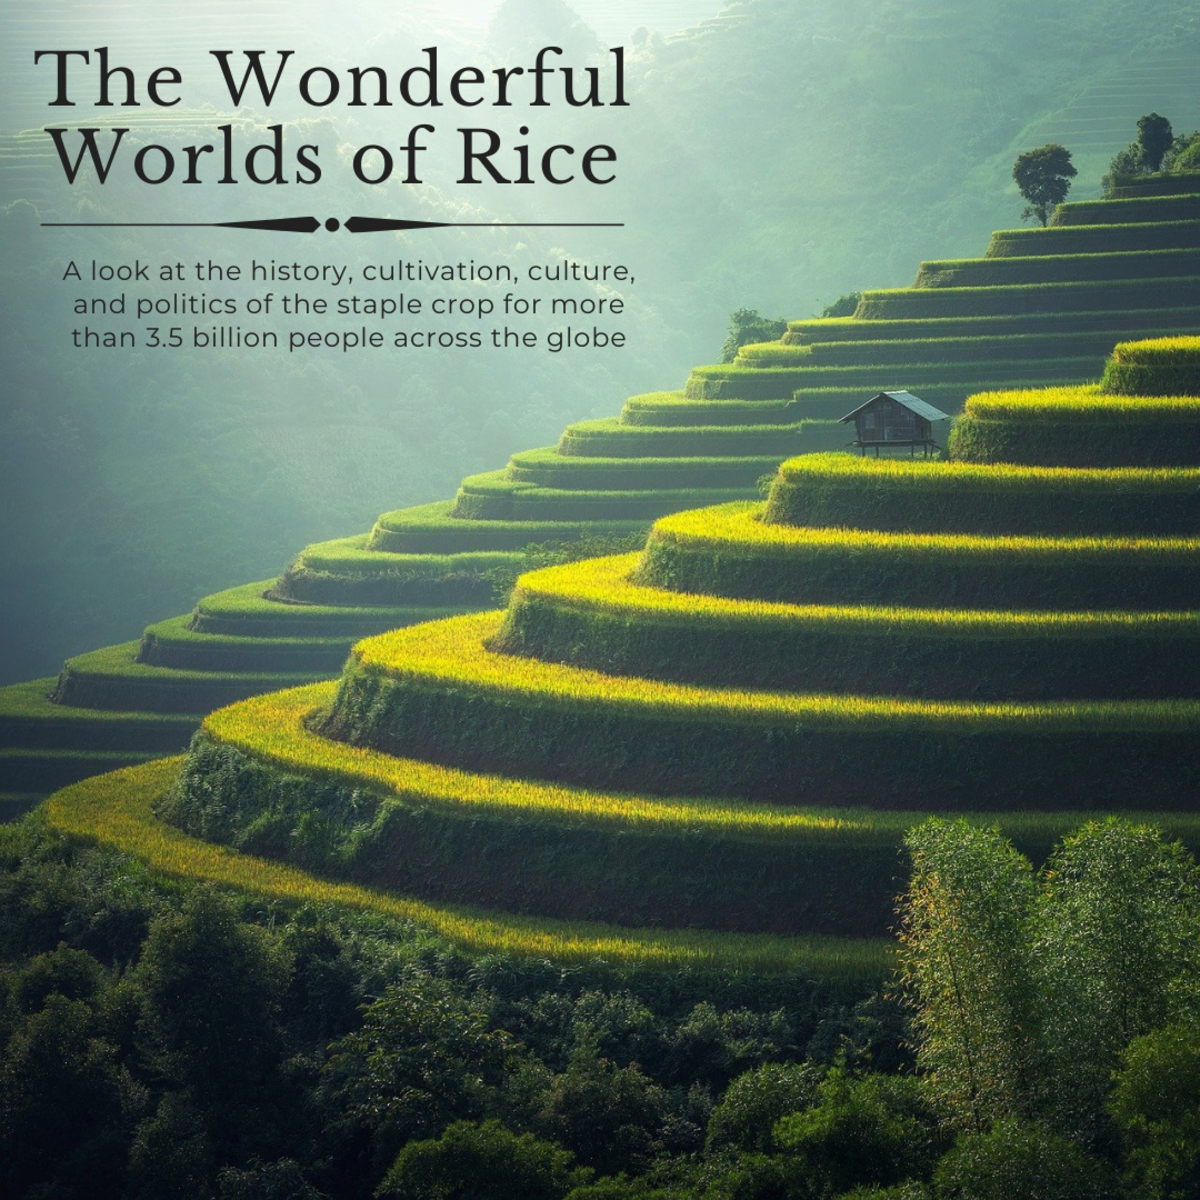 This article will take a deep dive into the origins, cultivation, culture, and politics of rice, the most widely consumed crop on the planet.